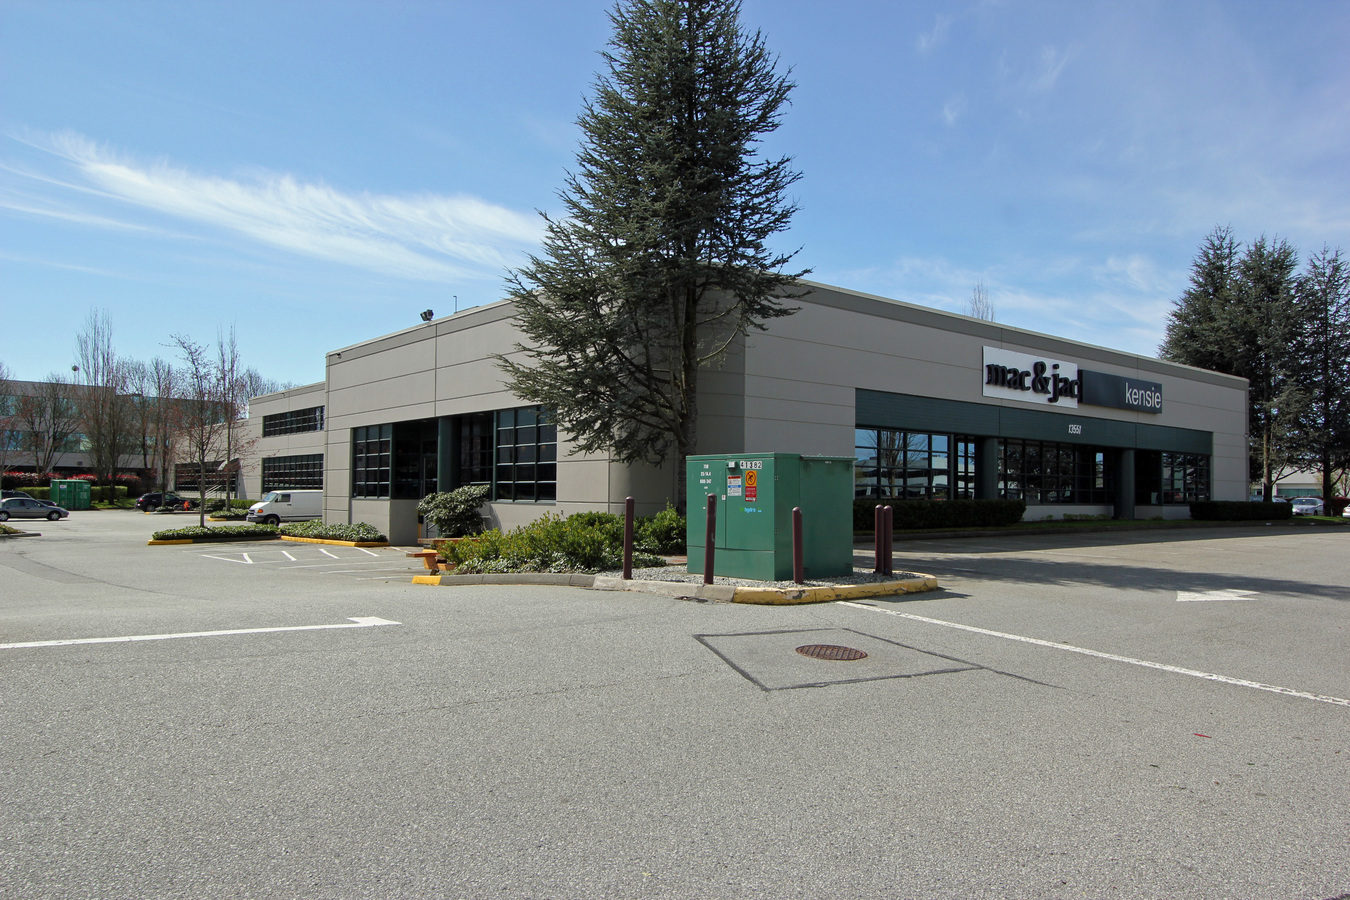 https://i1.wp.com/crestwoodcorporatecentre.com/wp-content/uploads/2020/07/Crestwood-Corporate-Centre-Building-4-Exterior.jpg?fit=1350%2C900&ssl=1